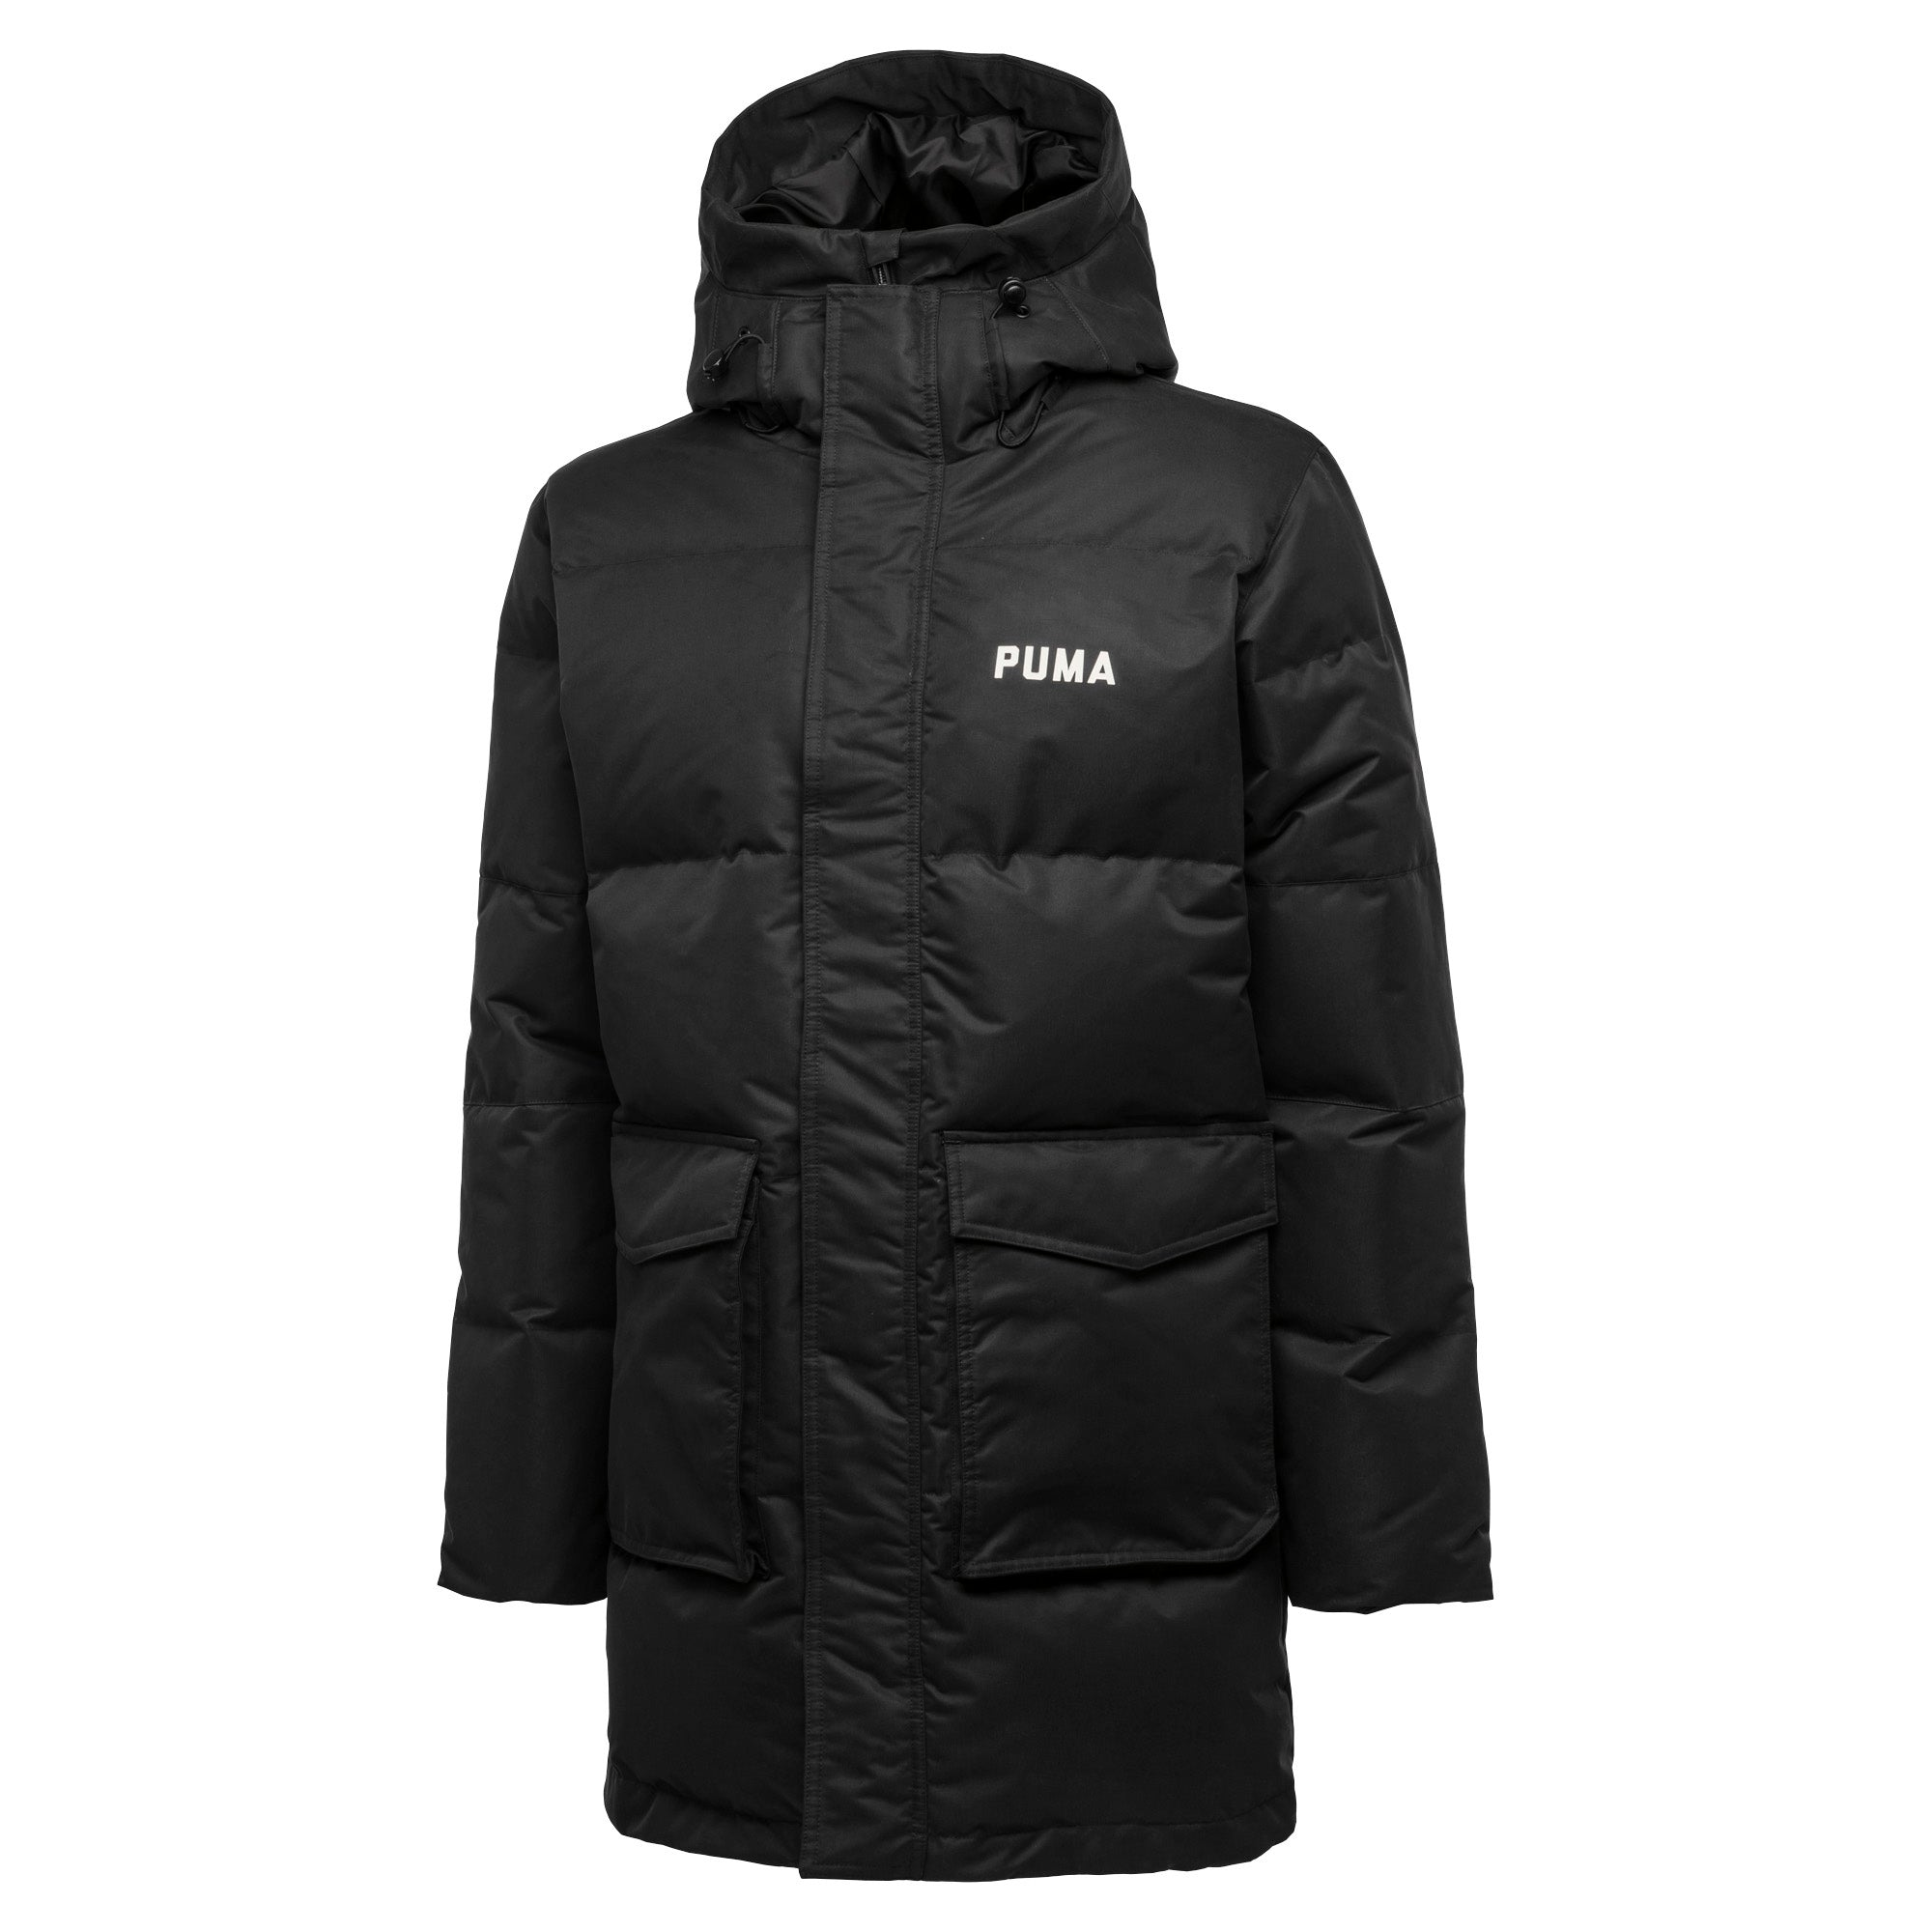 PUMA | Outlaw Moscow Jacket Black